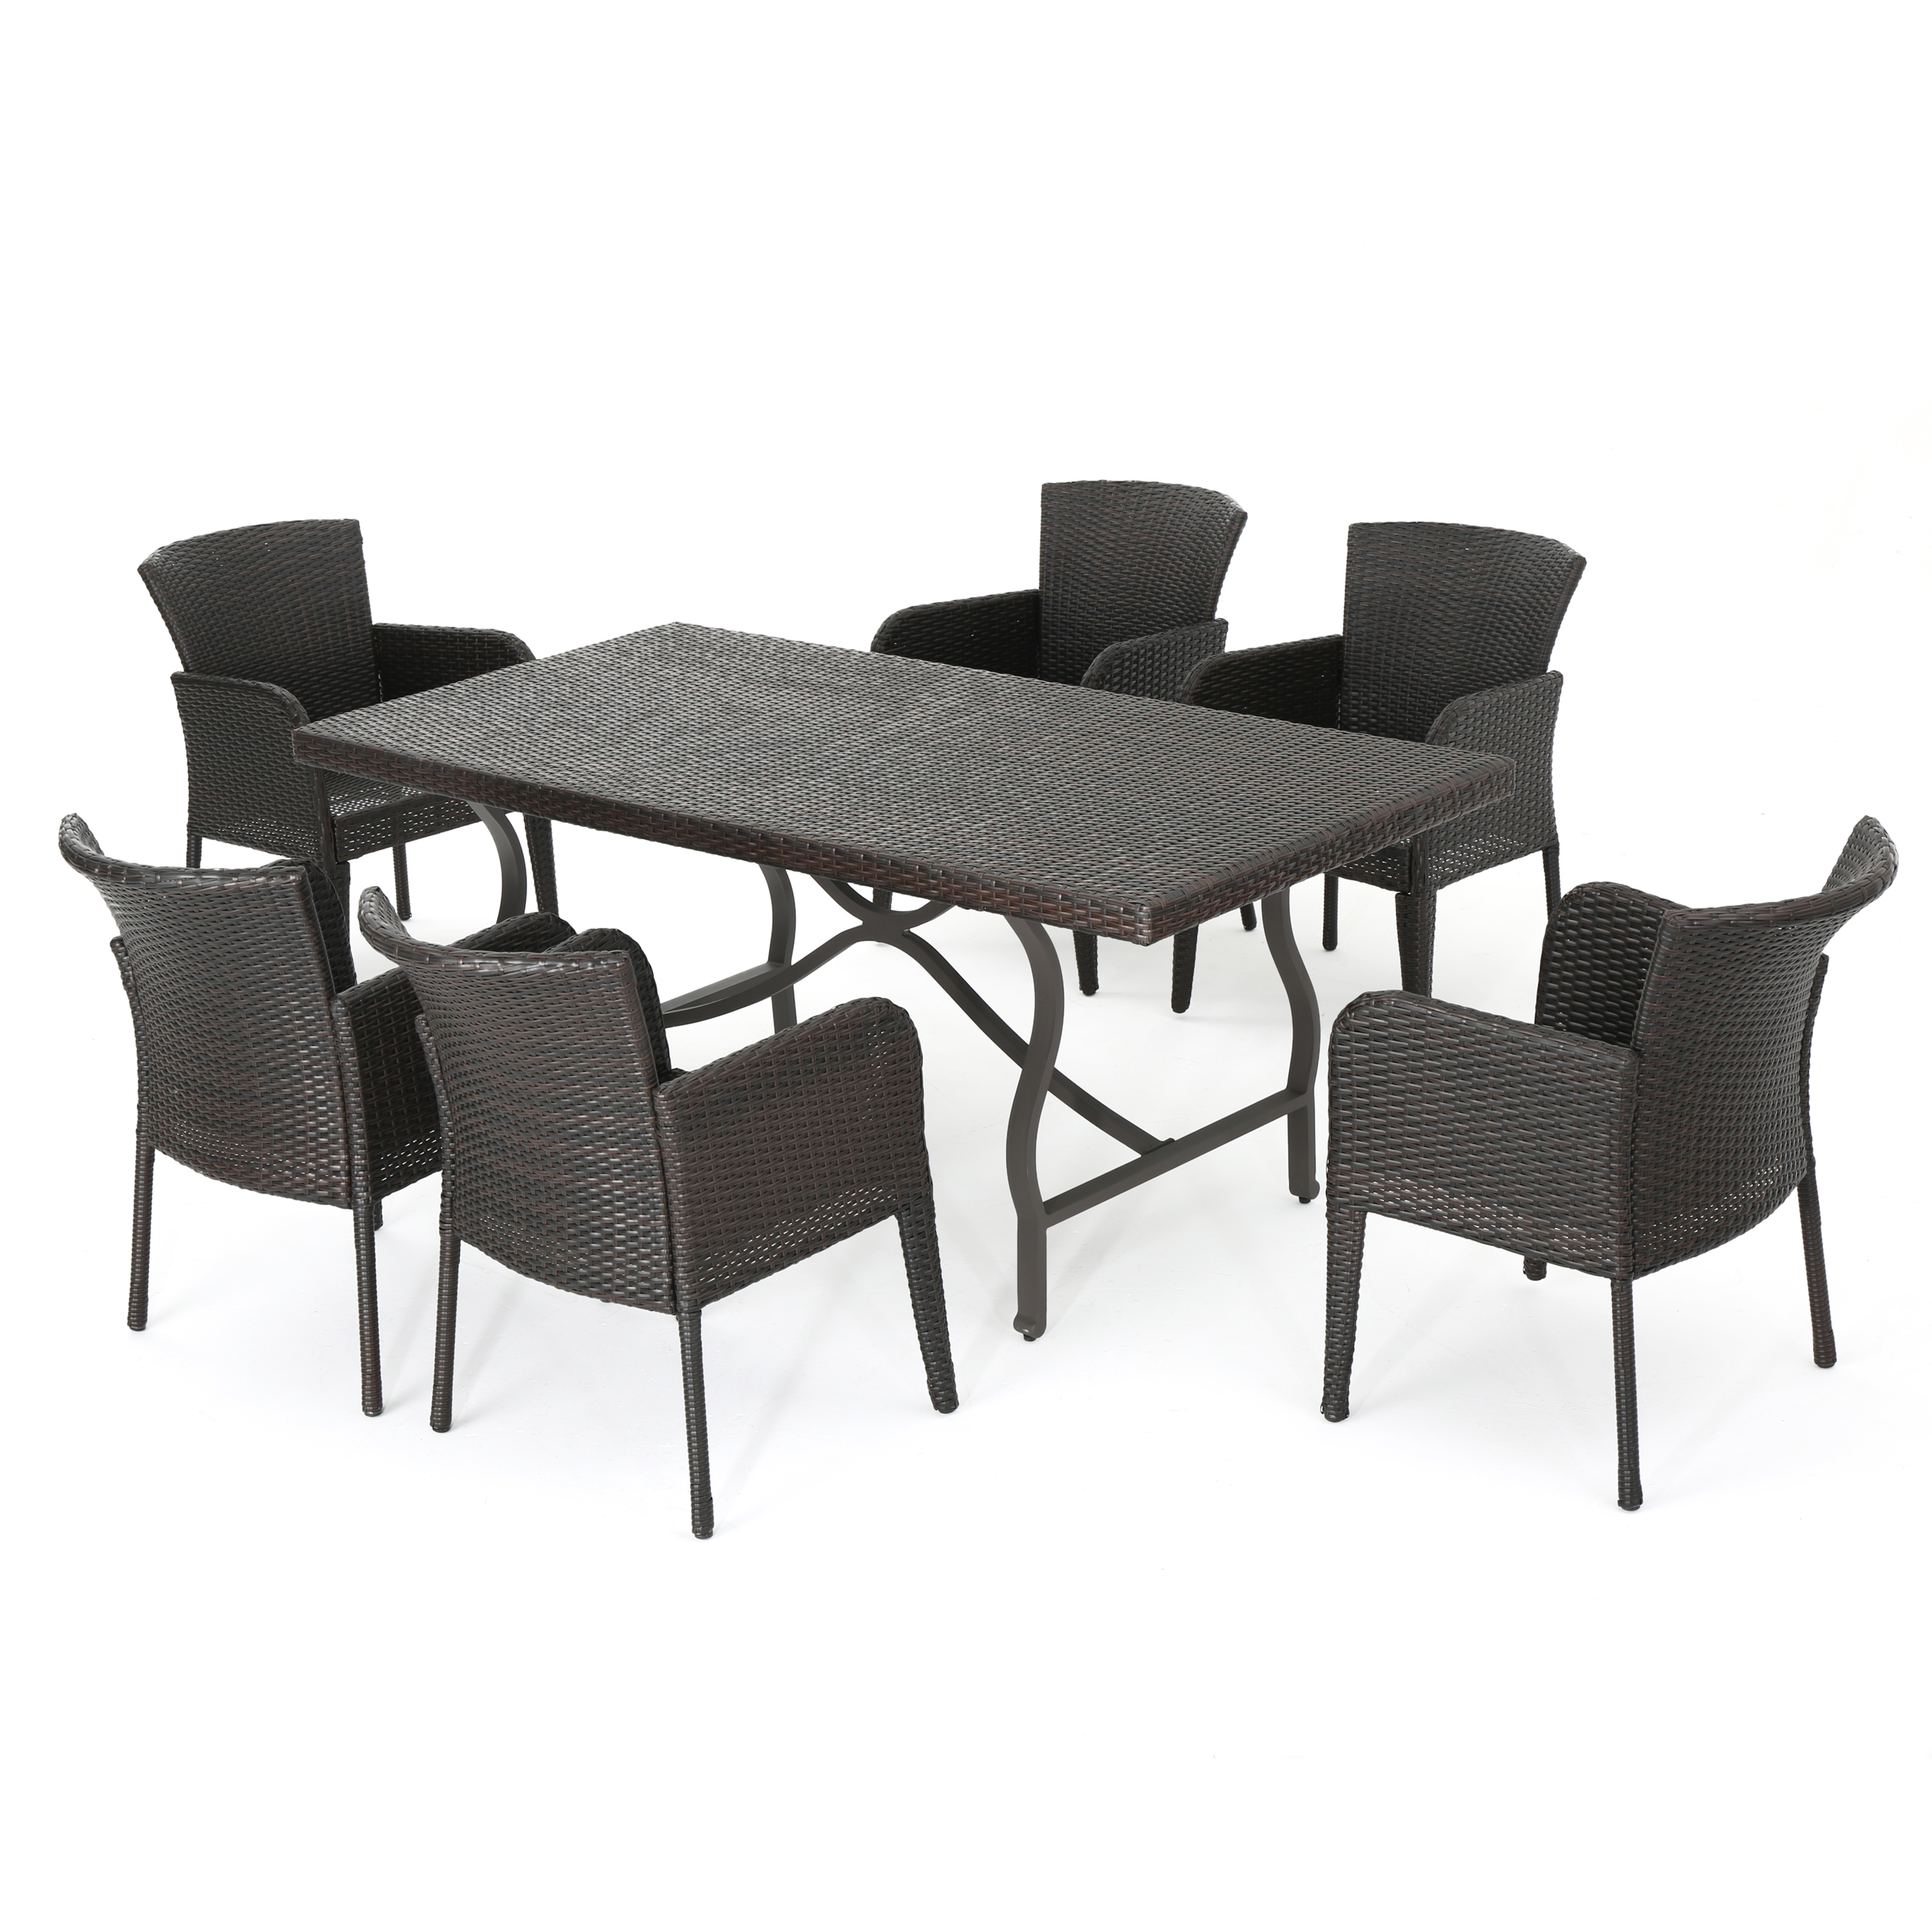 Cozumel Outdoor 7-piece Dining Set, Multibrown